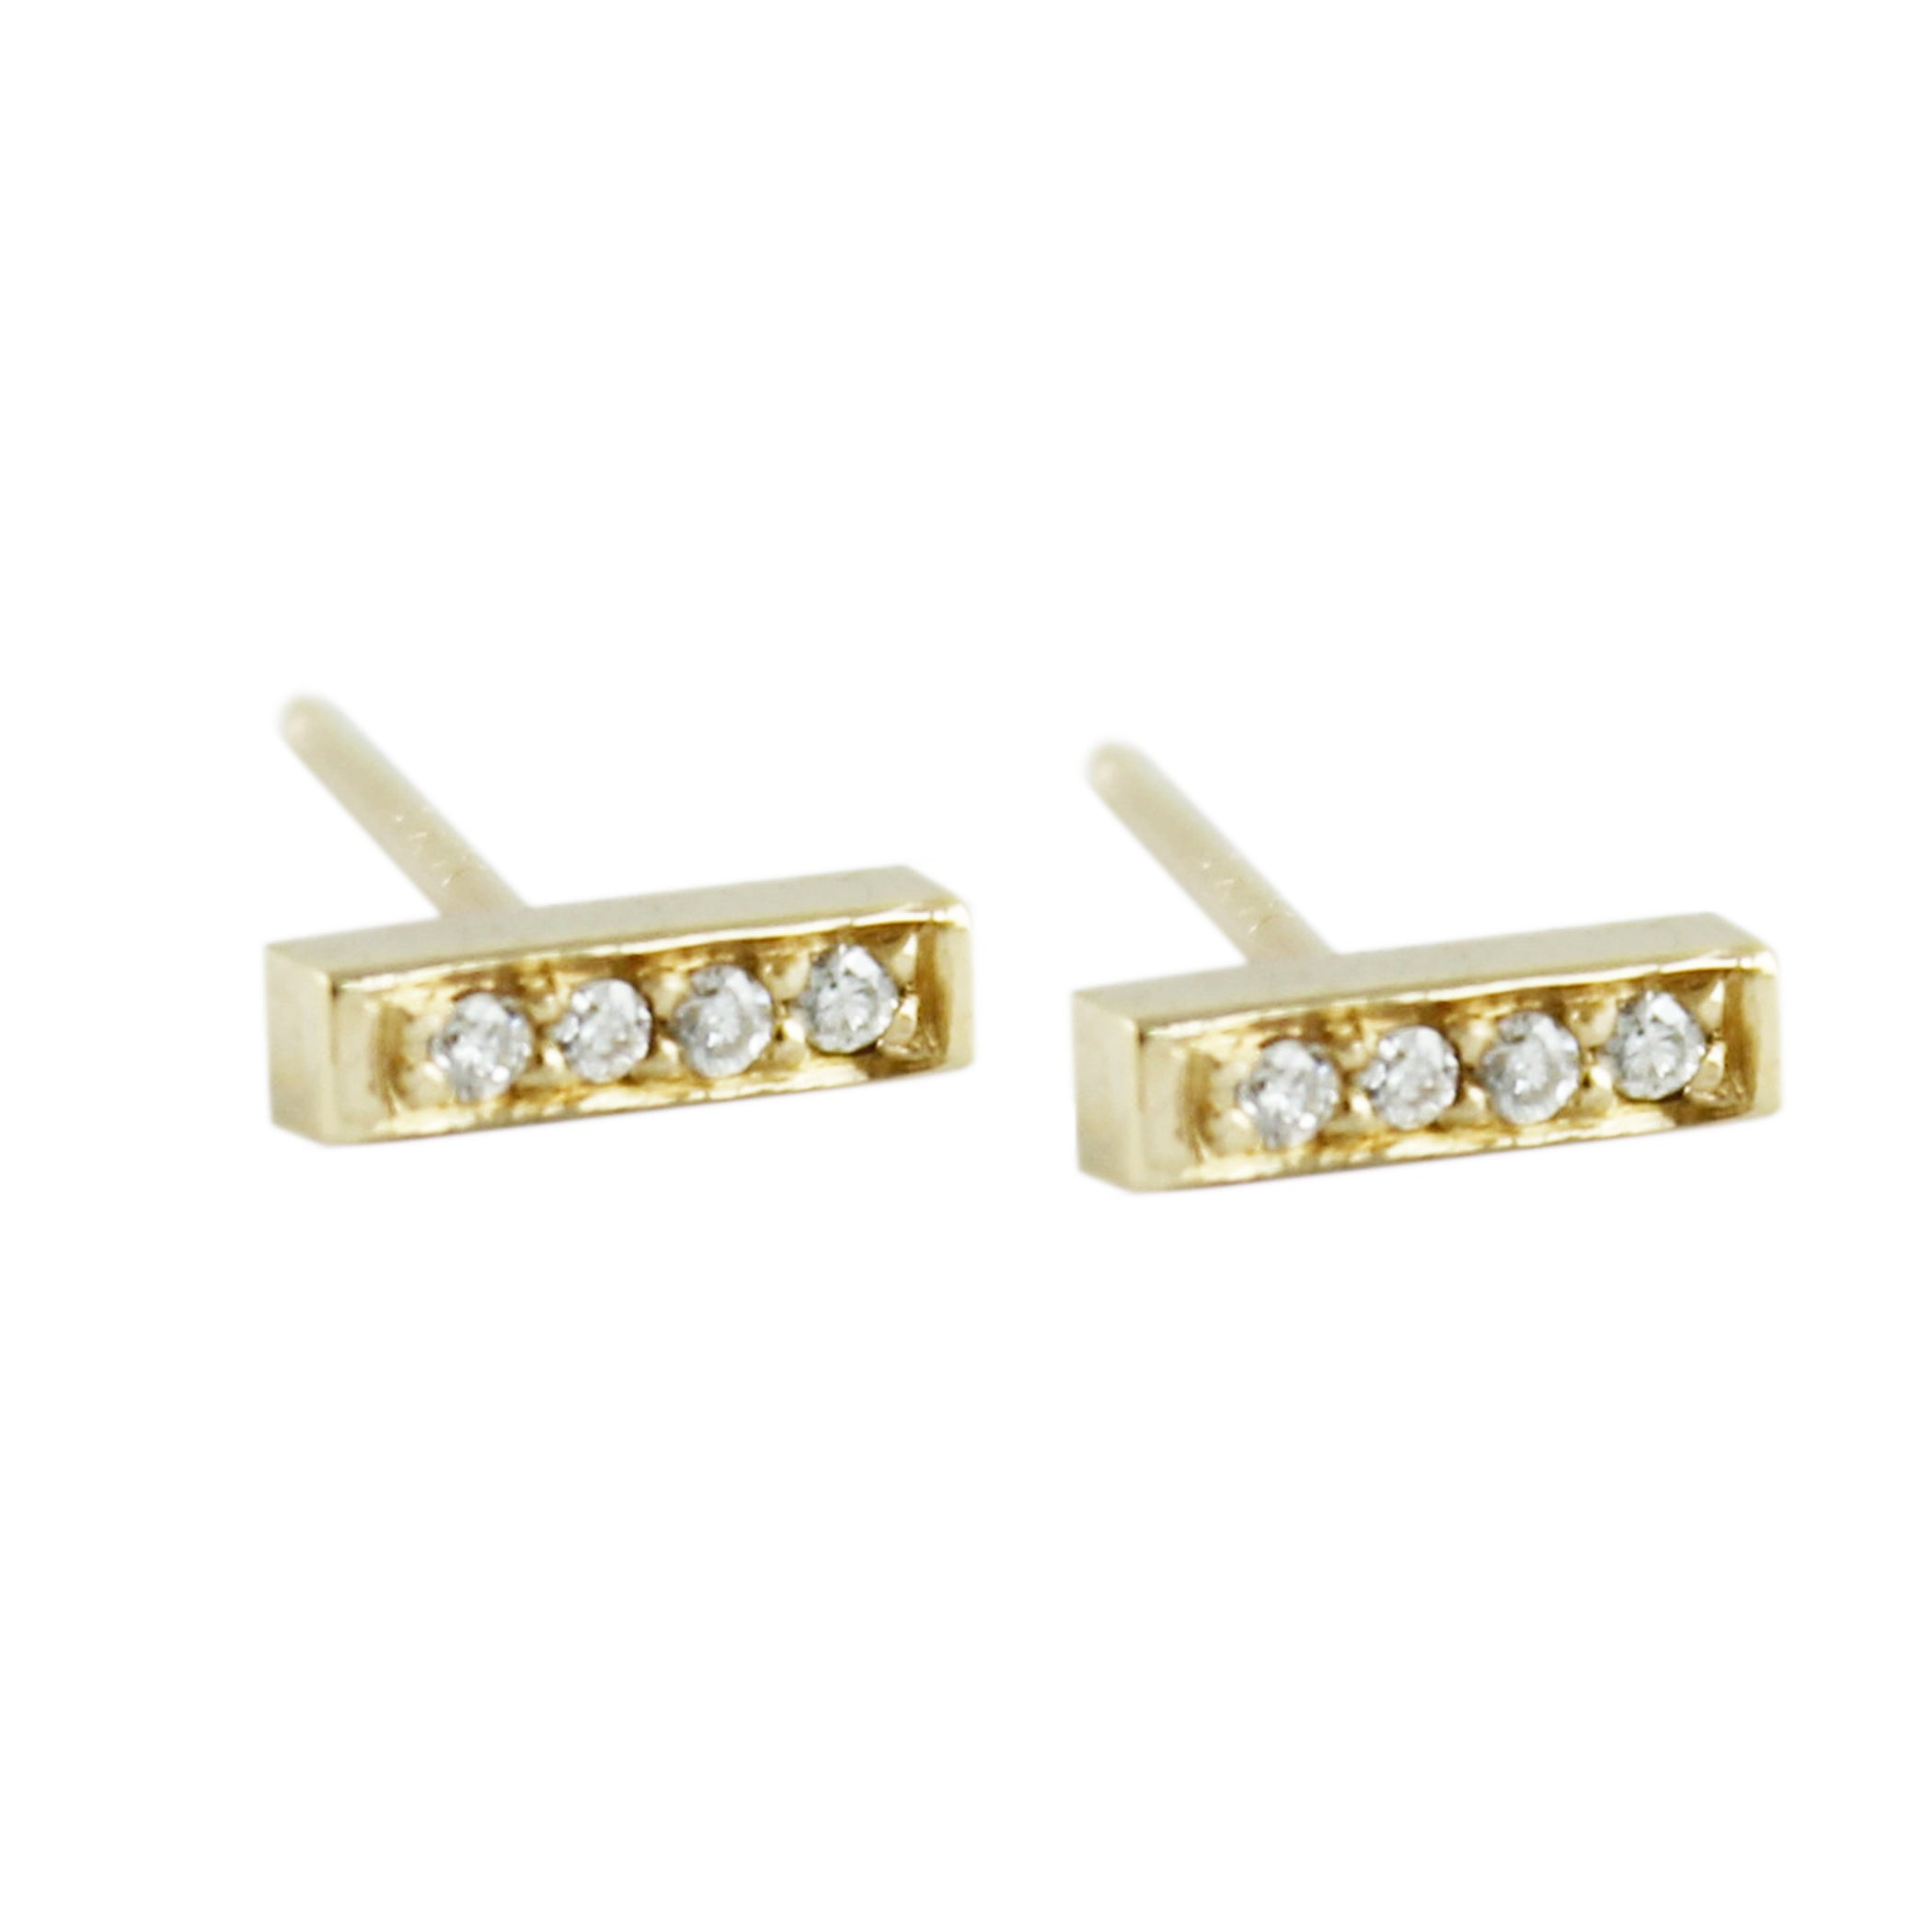 4 PAVE DIAMOND BAR STUDS